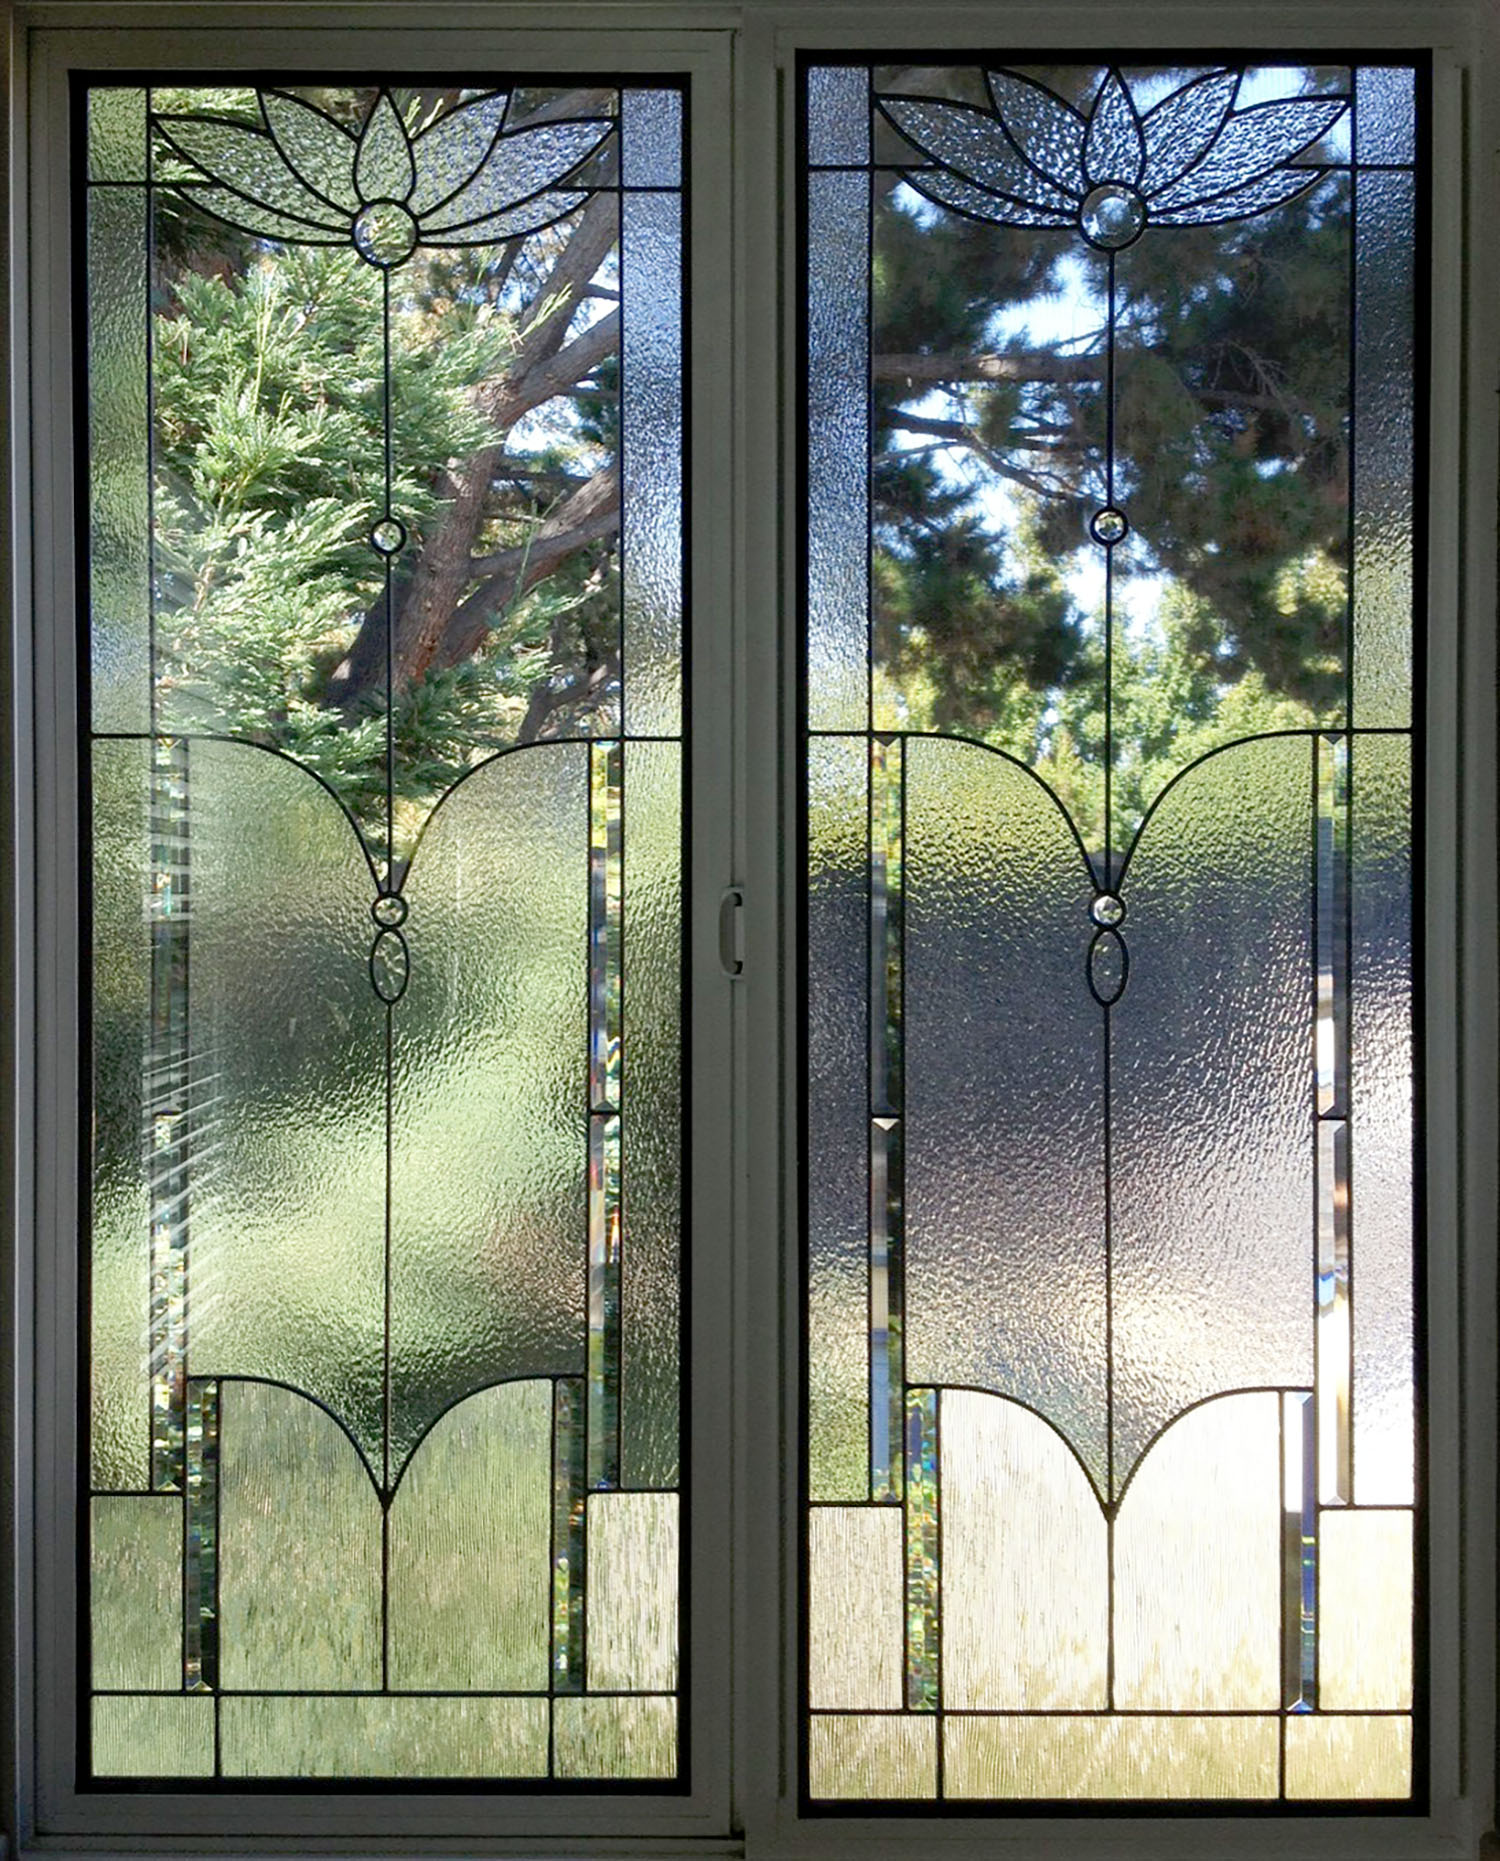 flower floral clear texture rough rolled corded glass craftsman leaded glass stained glass window palo alto atherton california san francisco san jose.jpg